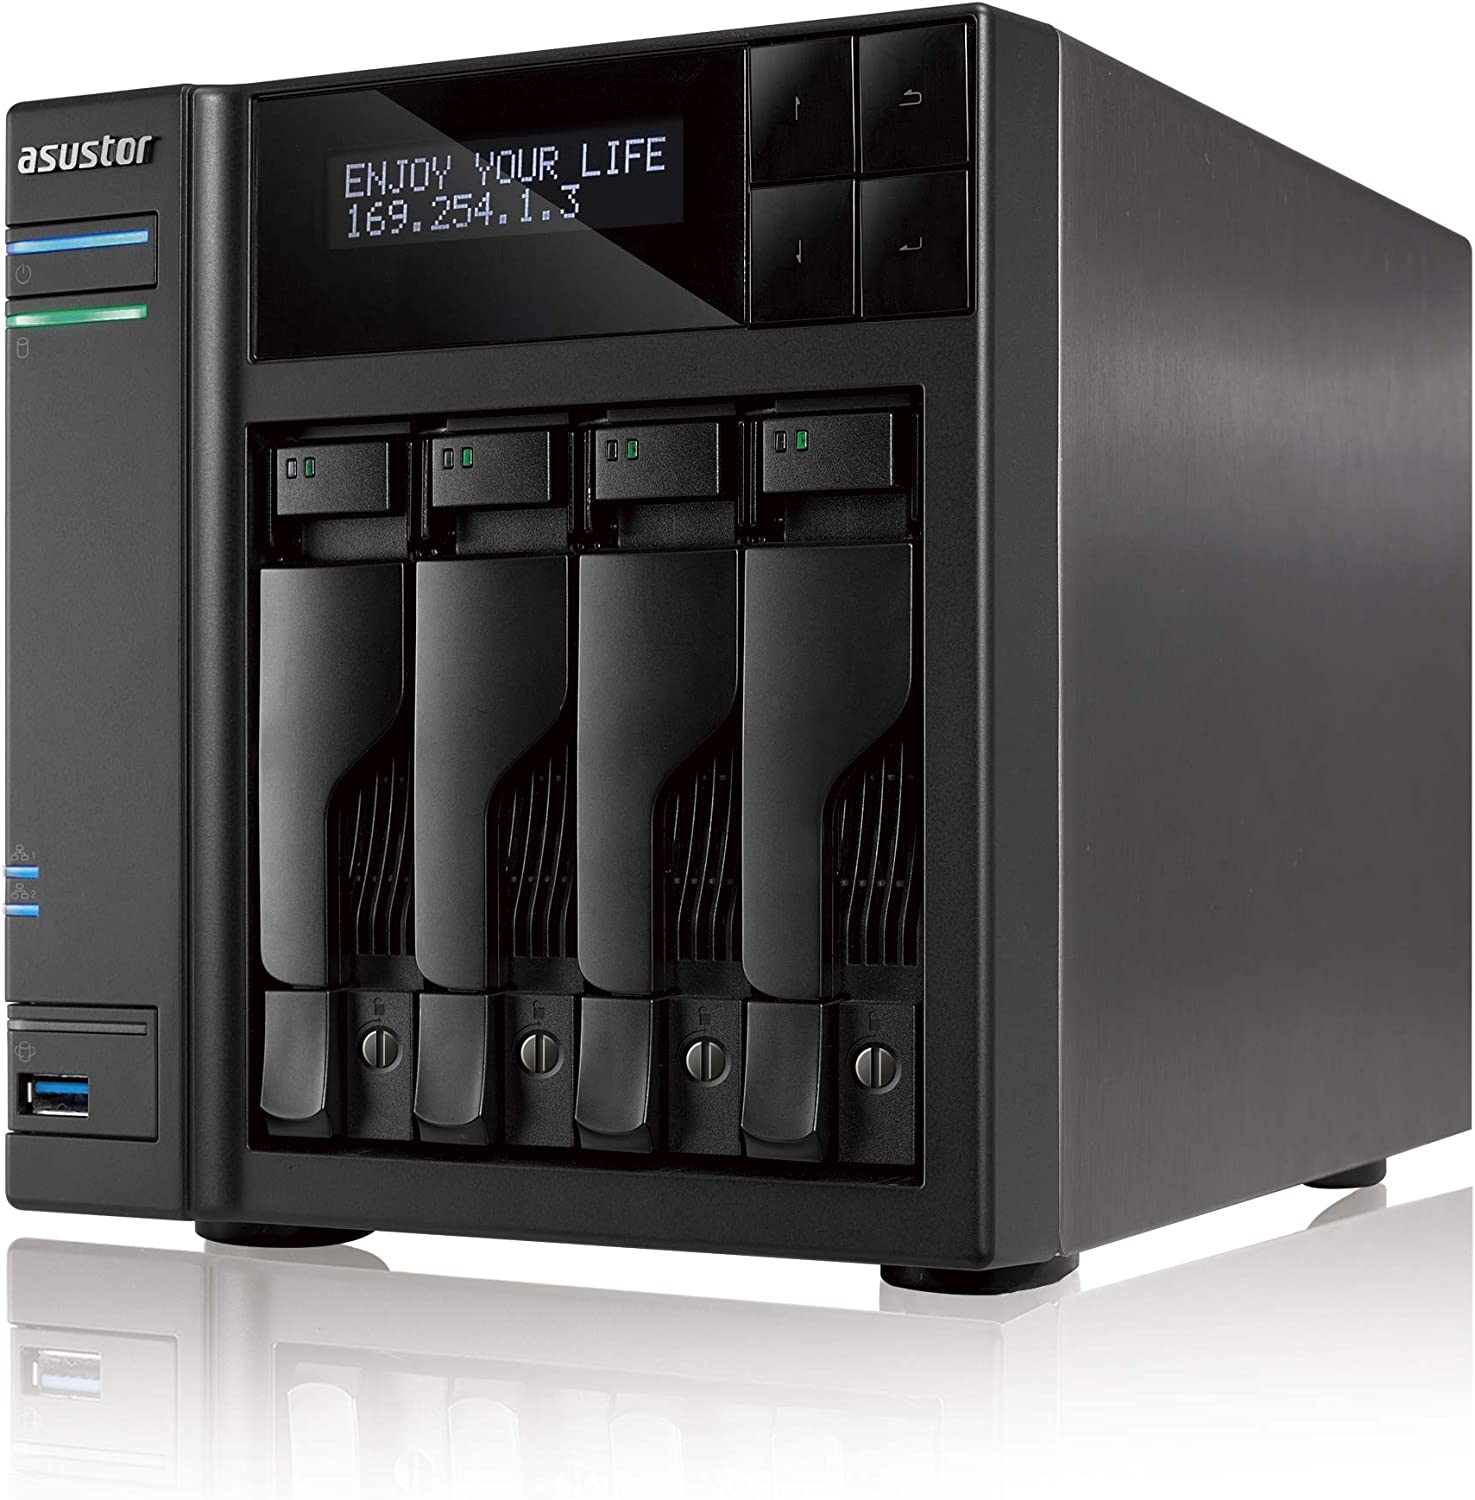 Asustor AS7004T-i5 | Enterprise Network Attached Storage | 3.0GHz Quad-Core, 8GB RAM | Personal Private Cloud | Home or Business Data Media Server (4 Bay Diskless)